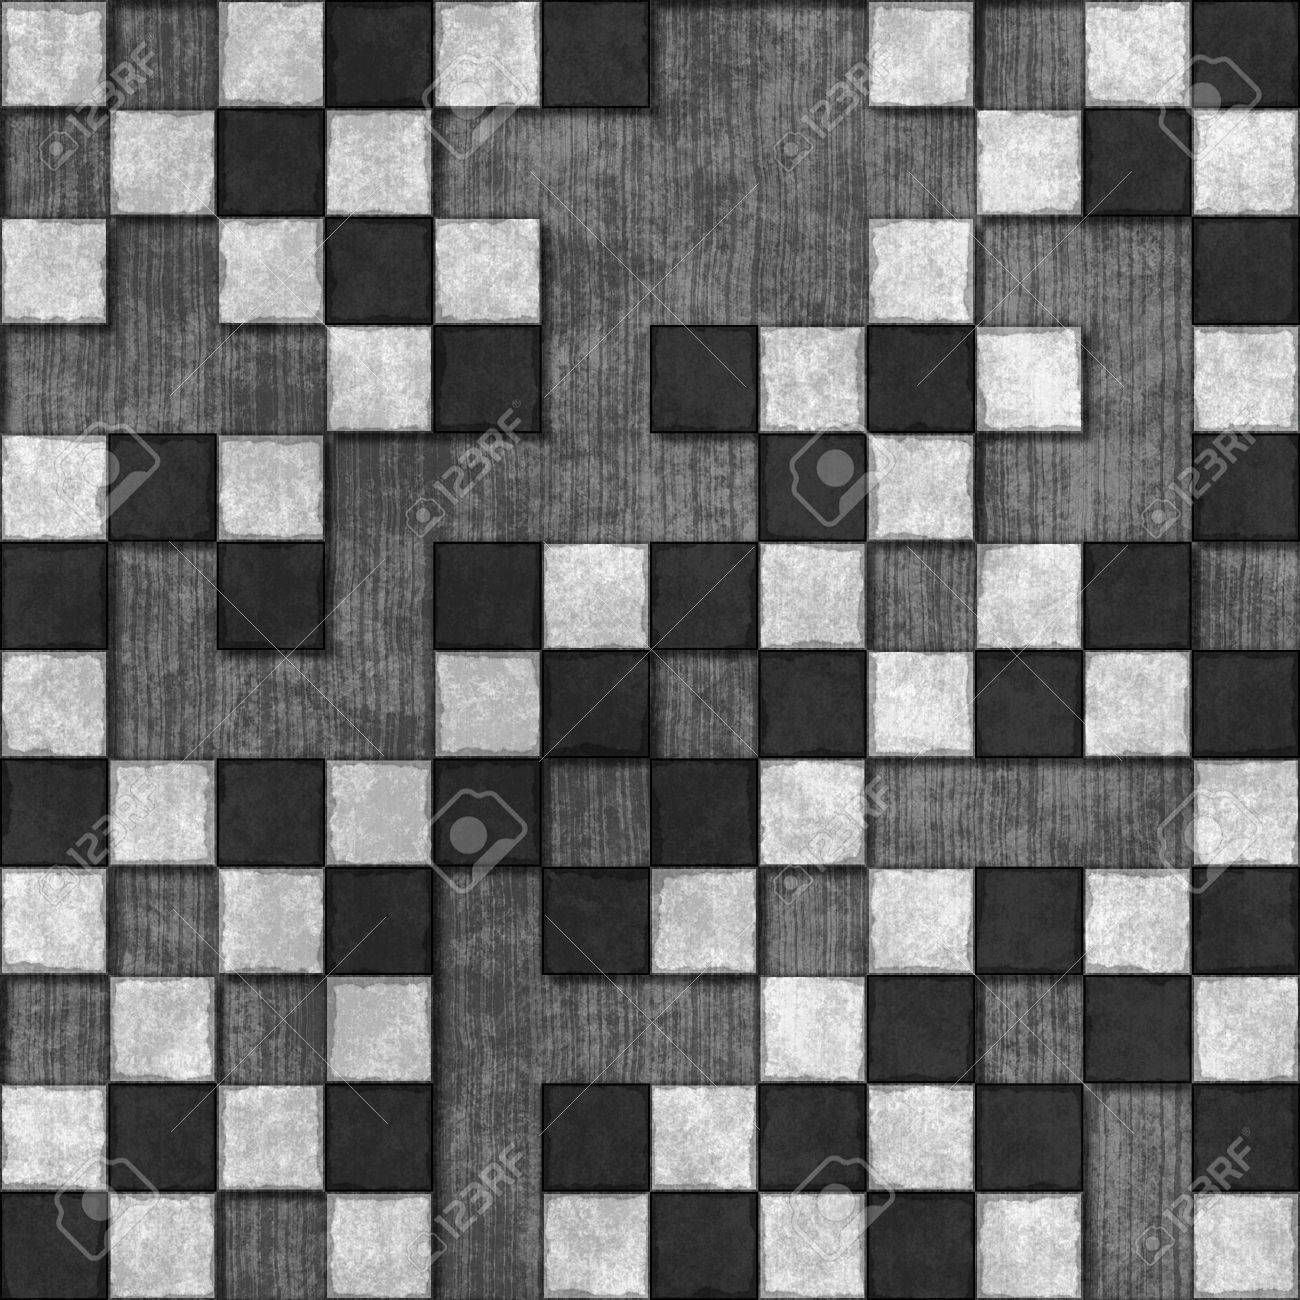 Seamless tiles texture with missing tiles in black and white Stock Photo    6559309. Seamless Tiles Texture With Missing Tiles In Black And White Stock